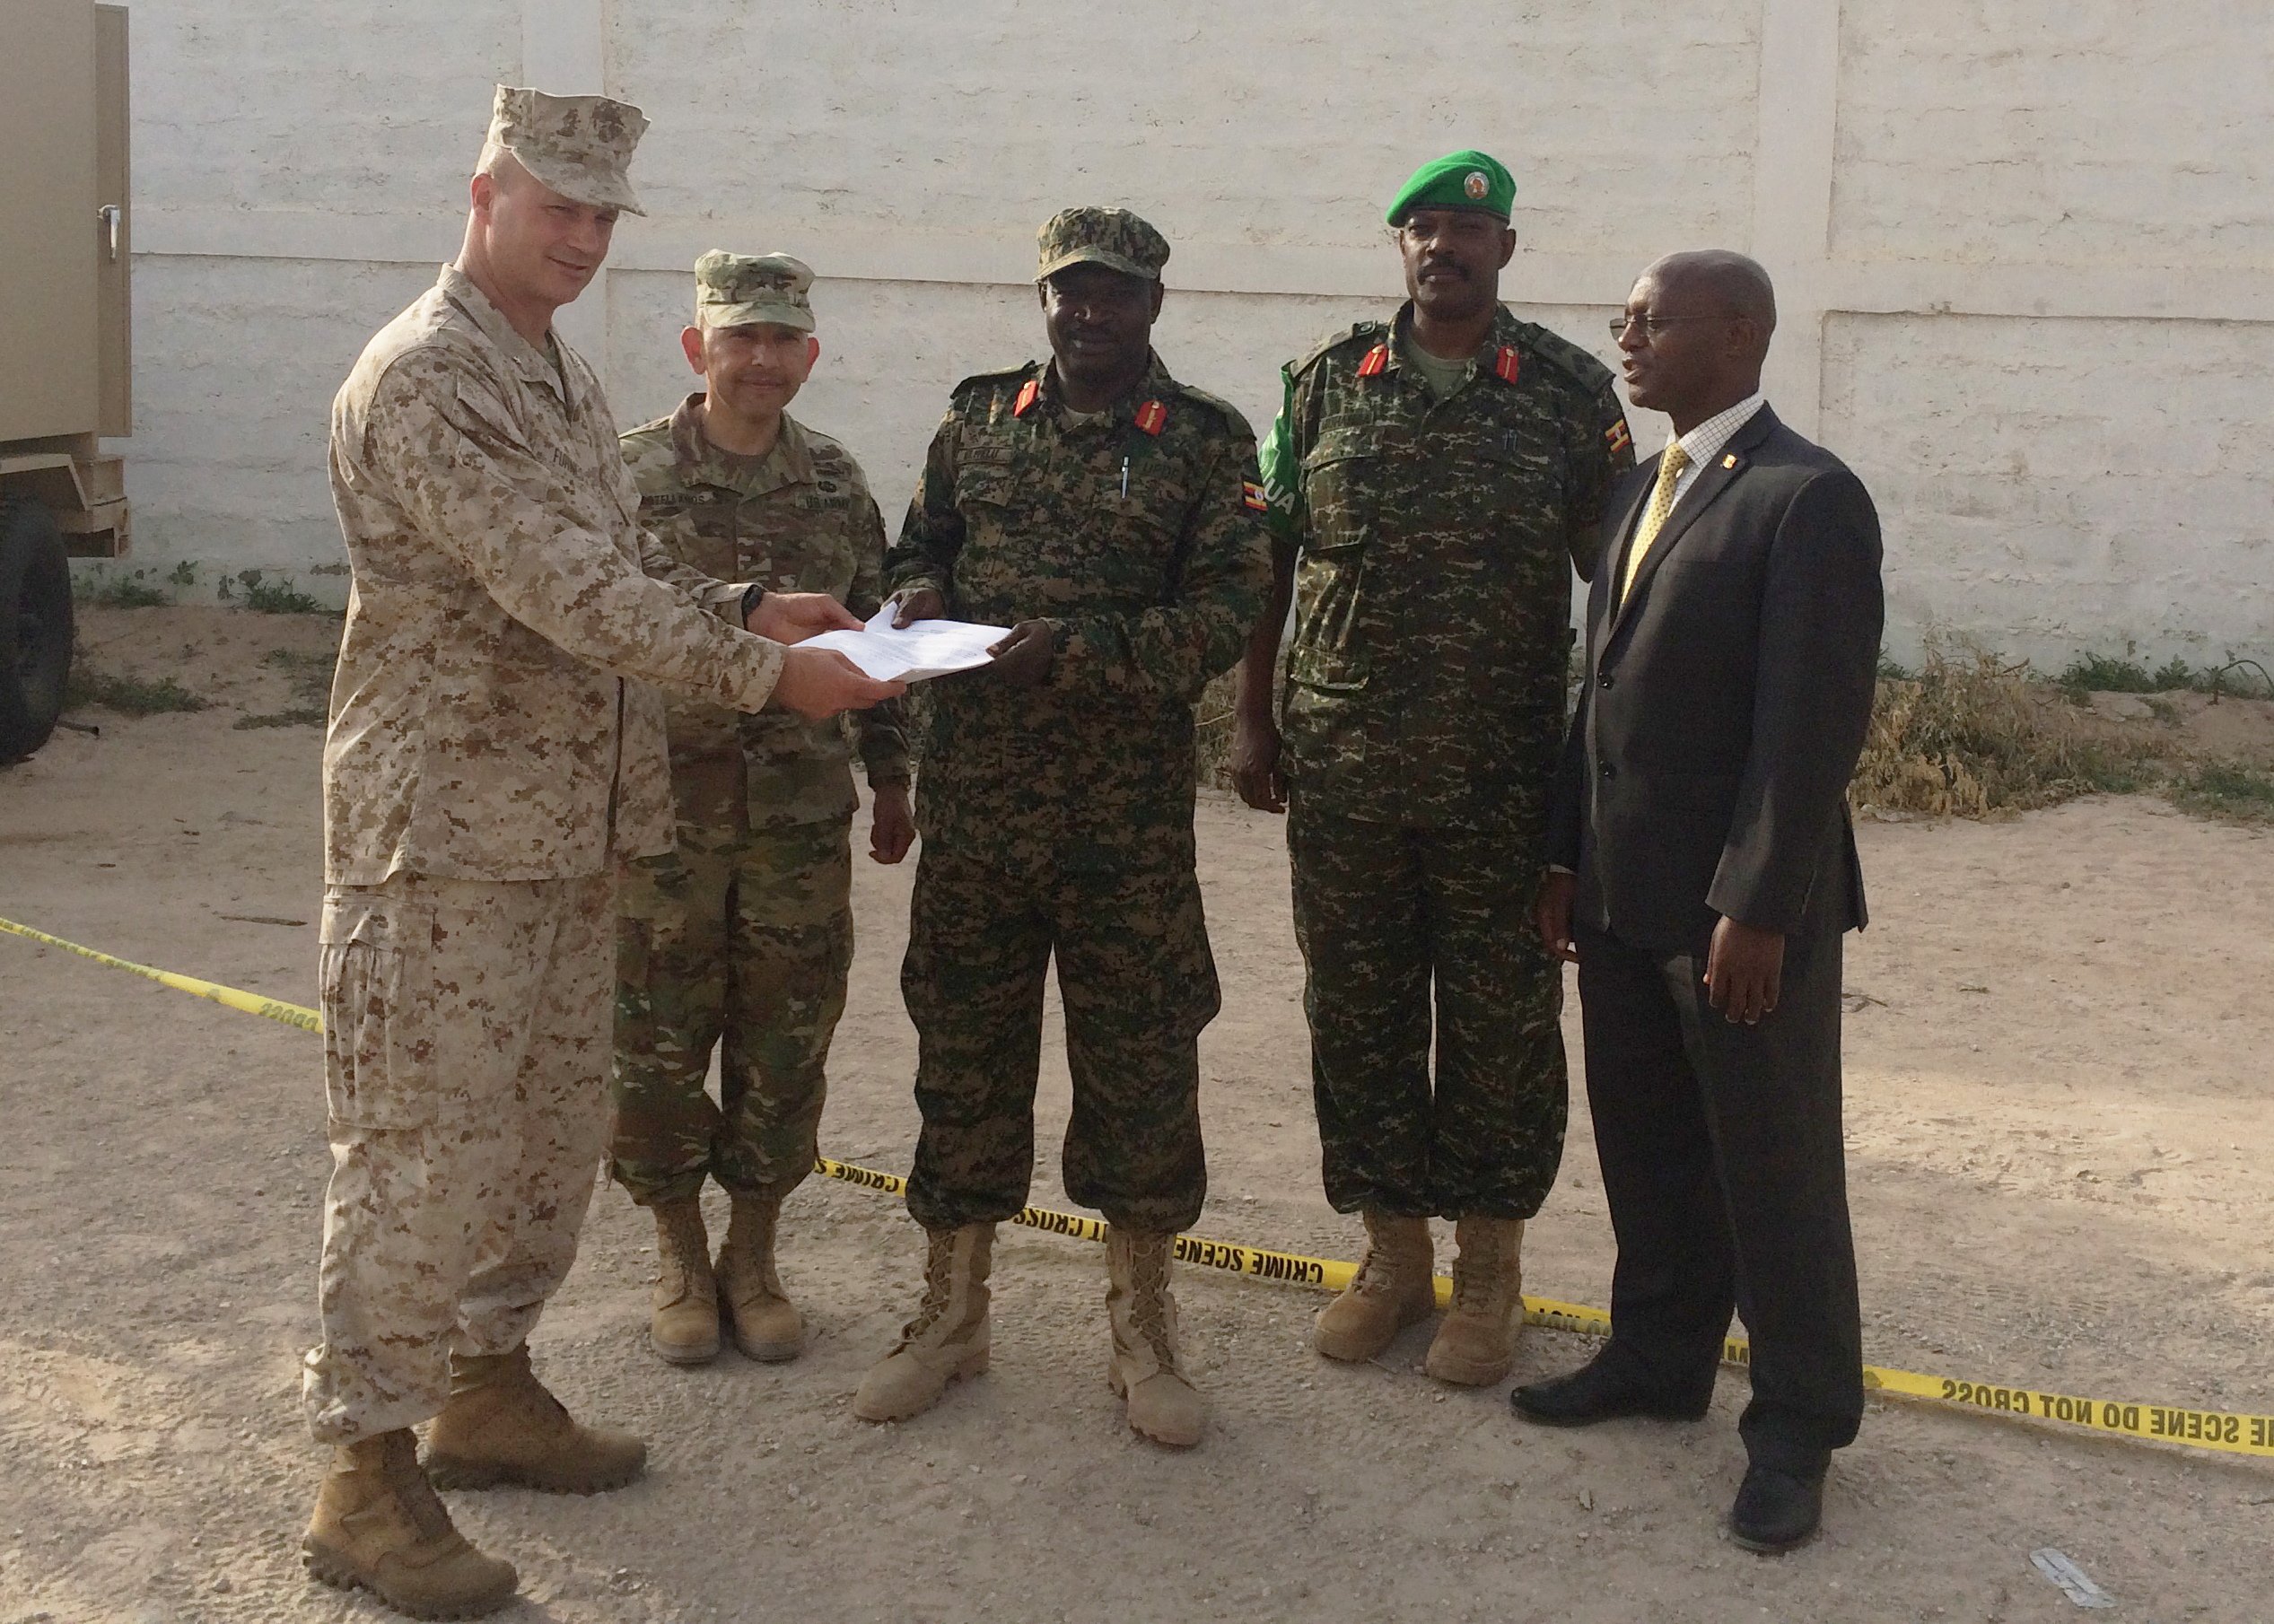 Combined Joint Task Force-Horn of Africa commander U.S. Marine Brig. Gen. David Furness and U.S. Army Brig. Gen. Miguel Castellanos, deputy commanding general for CJTF-HOA in Somalia and Mogadishu Coordination Cell director, hand over documentation of U.S. military force protection assets that are being provided to Uganda People's Defense Force (UPDF) July 25, at the Mogadishu Coordination Cell, Somalia.